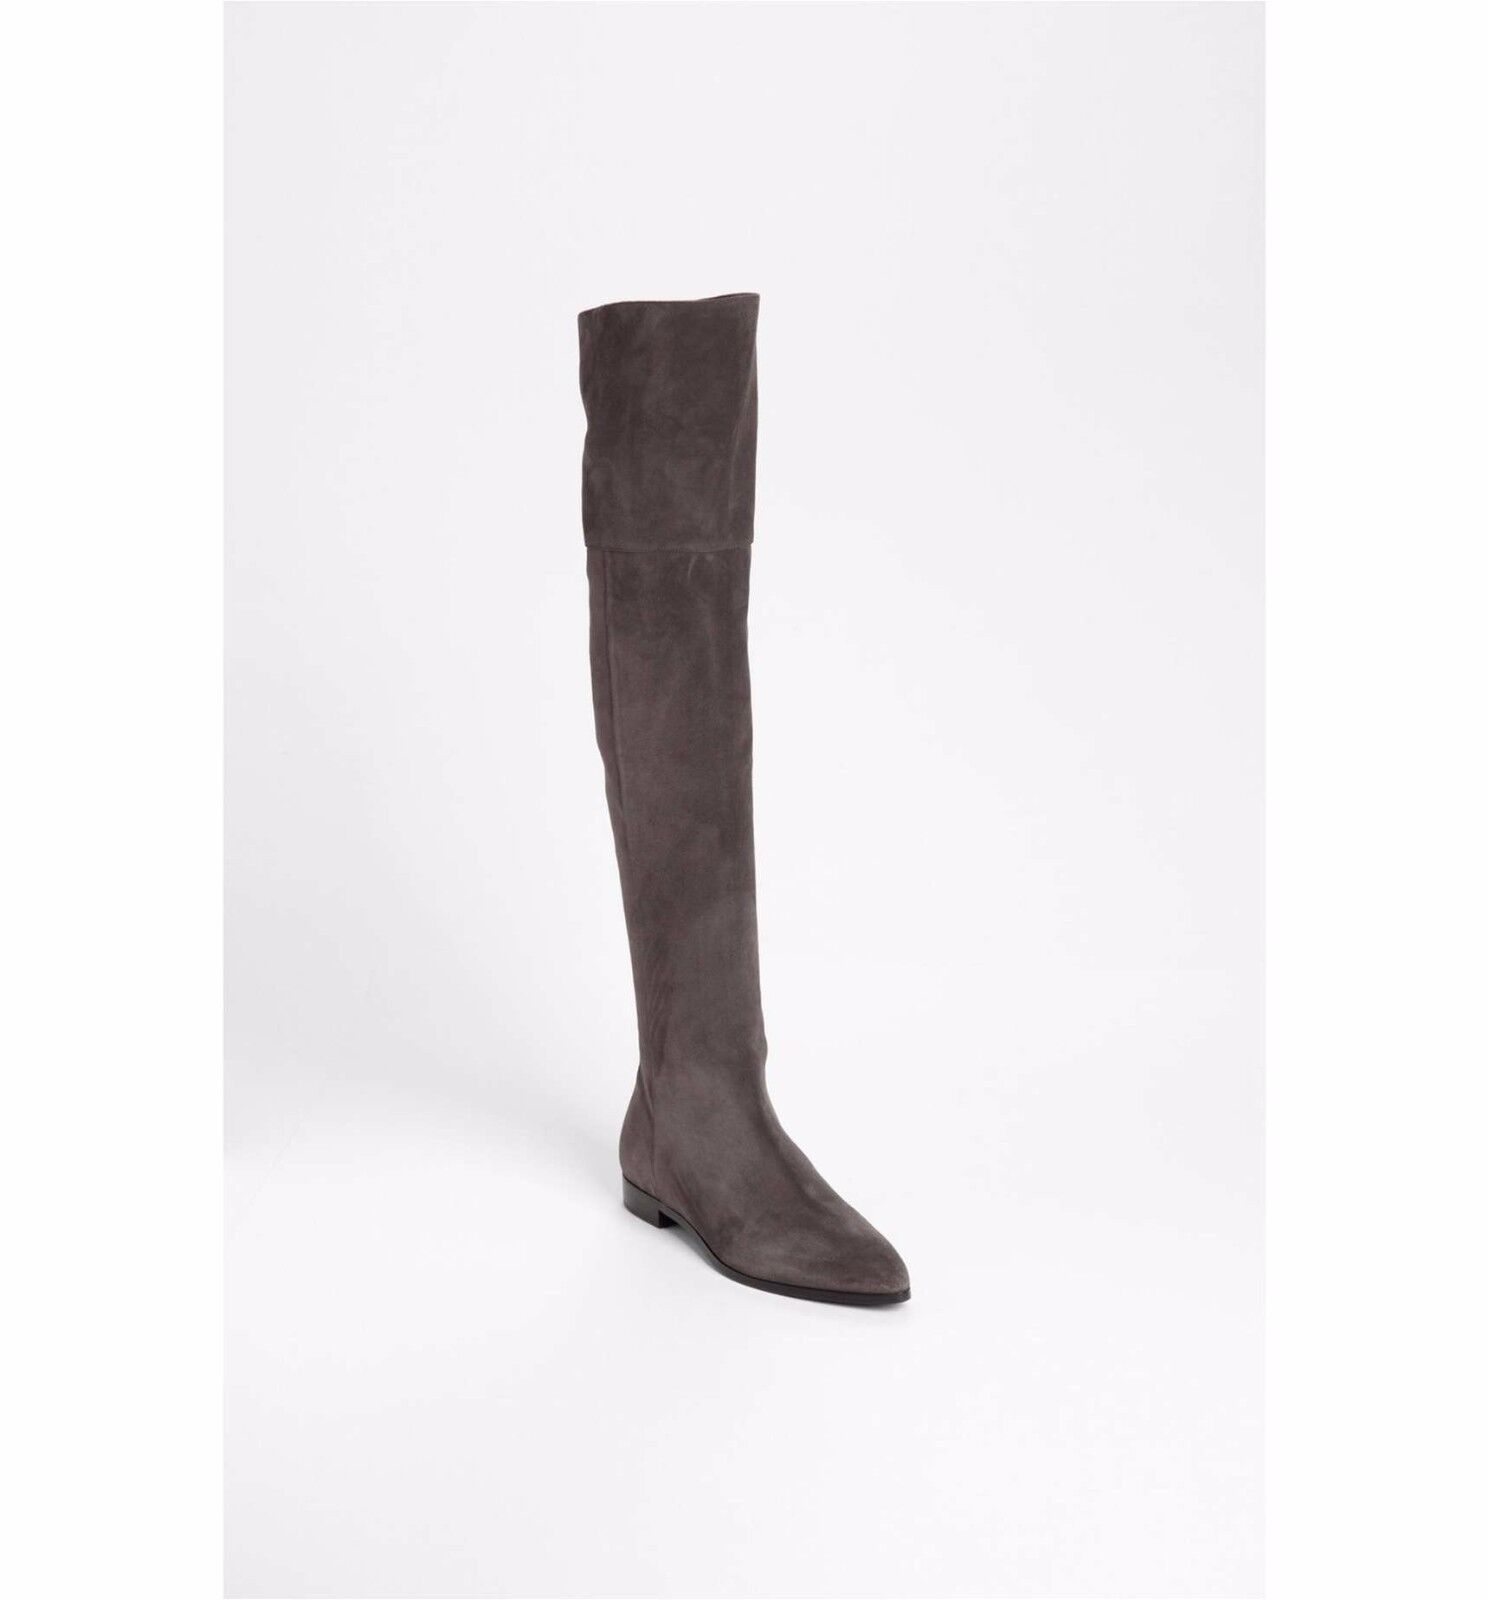 1750.00 Prada Over the Knee Boot sz  EU 39.5    US 9.5 in brown suede